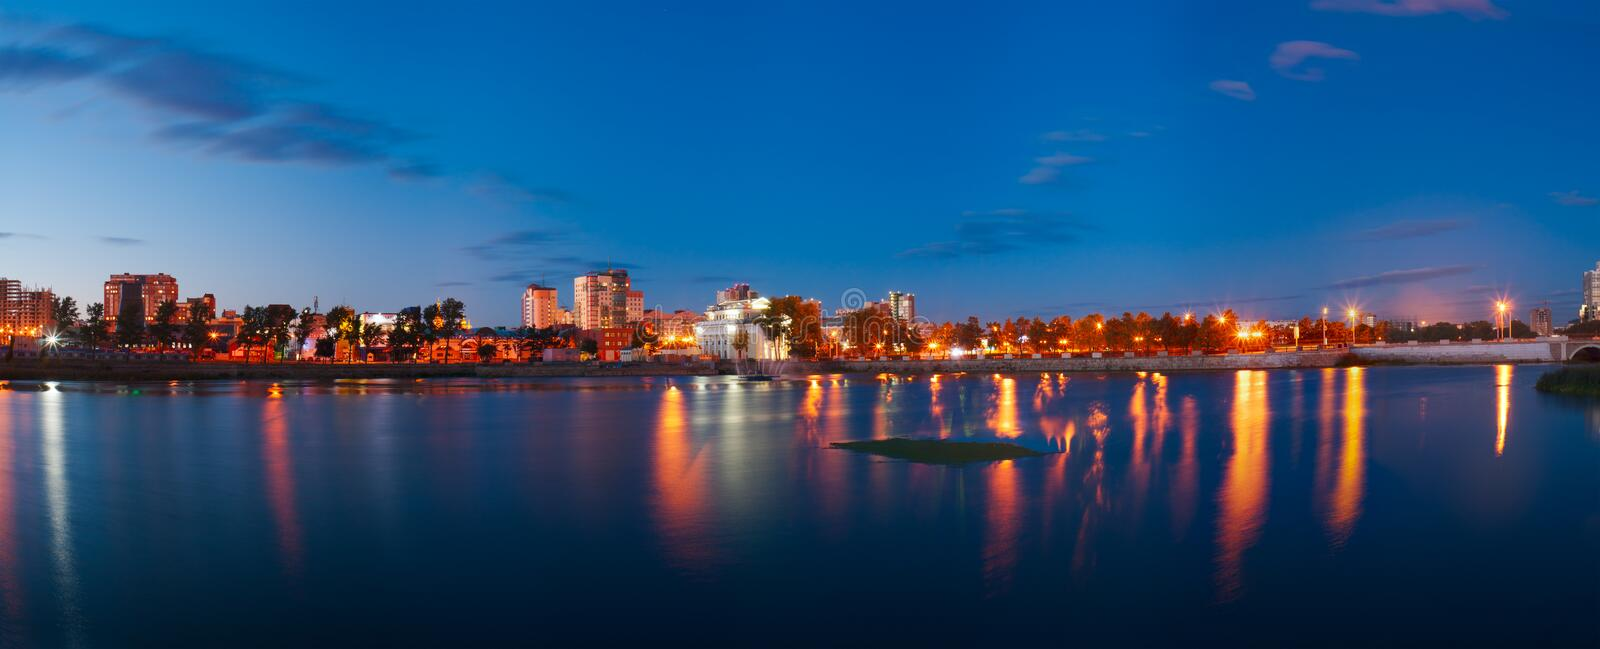 Evening panorama of the Miass River embankment, Chelyabinsk, September 2017. Editorial use only. Russia, Chelyabinsk - September 2017: Evening panorama of the stock images